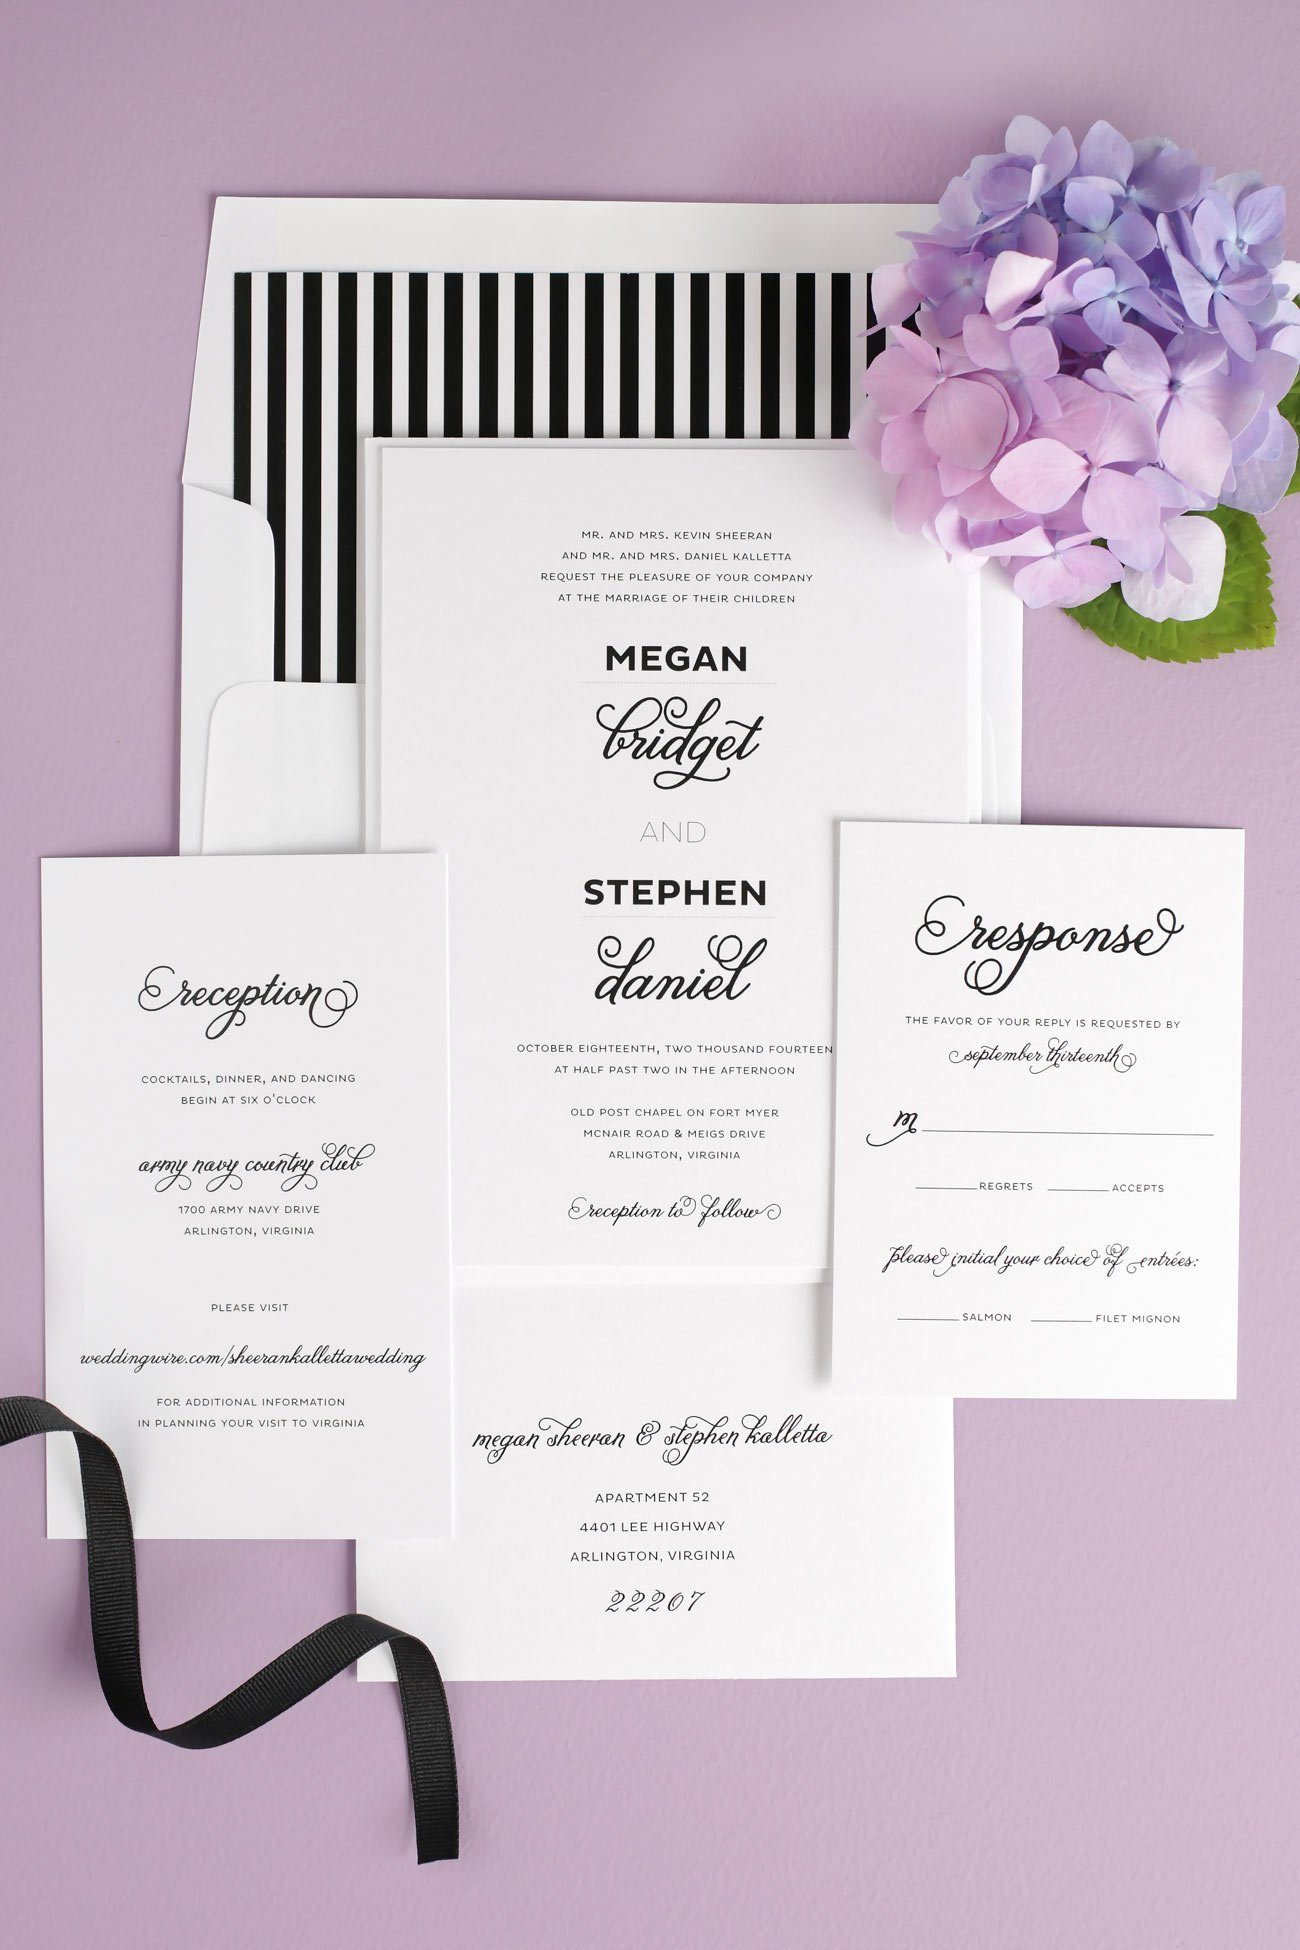 Whimsical wedding invitations in black and white